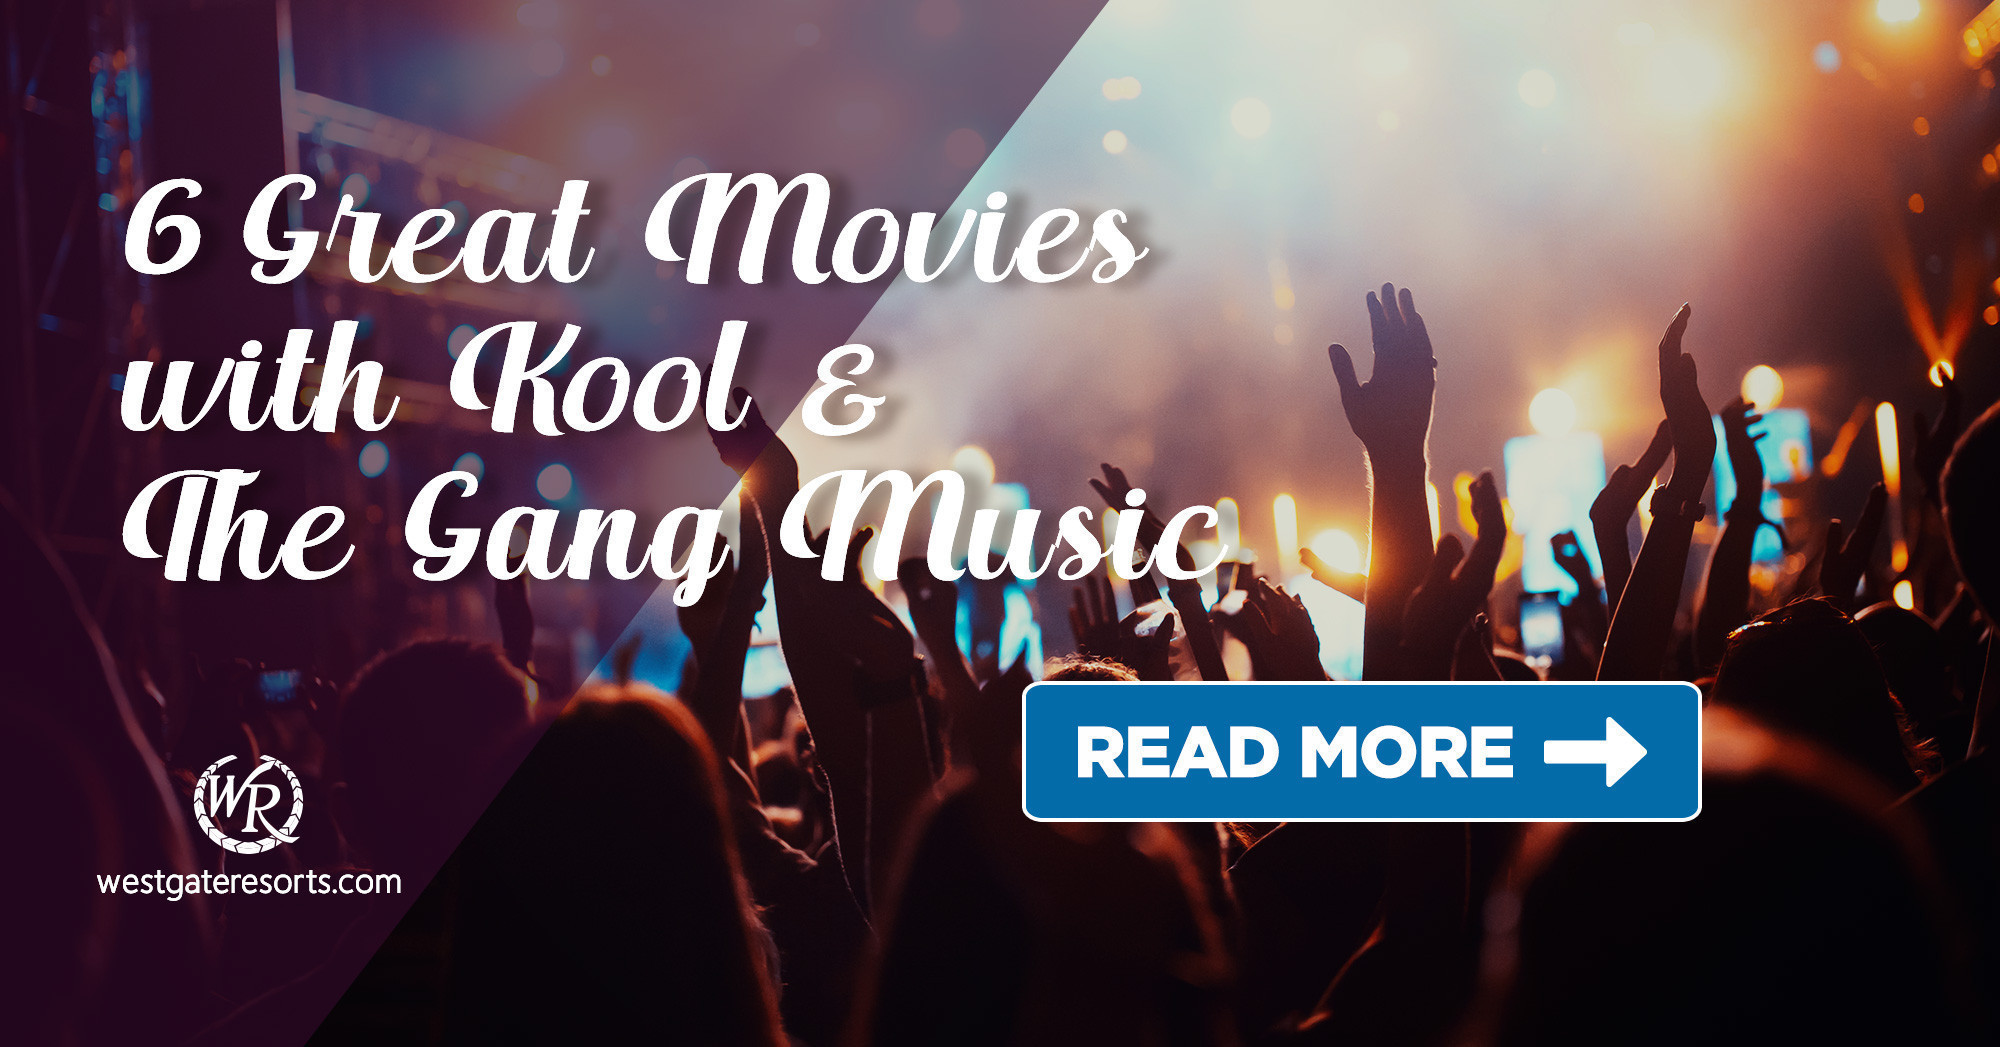 6 Great Movies with Kool & The Gang Music